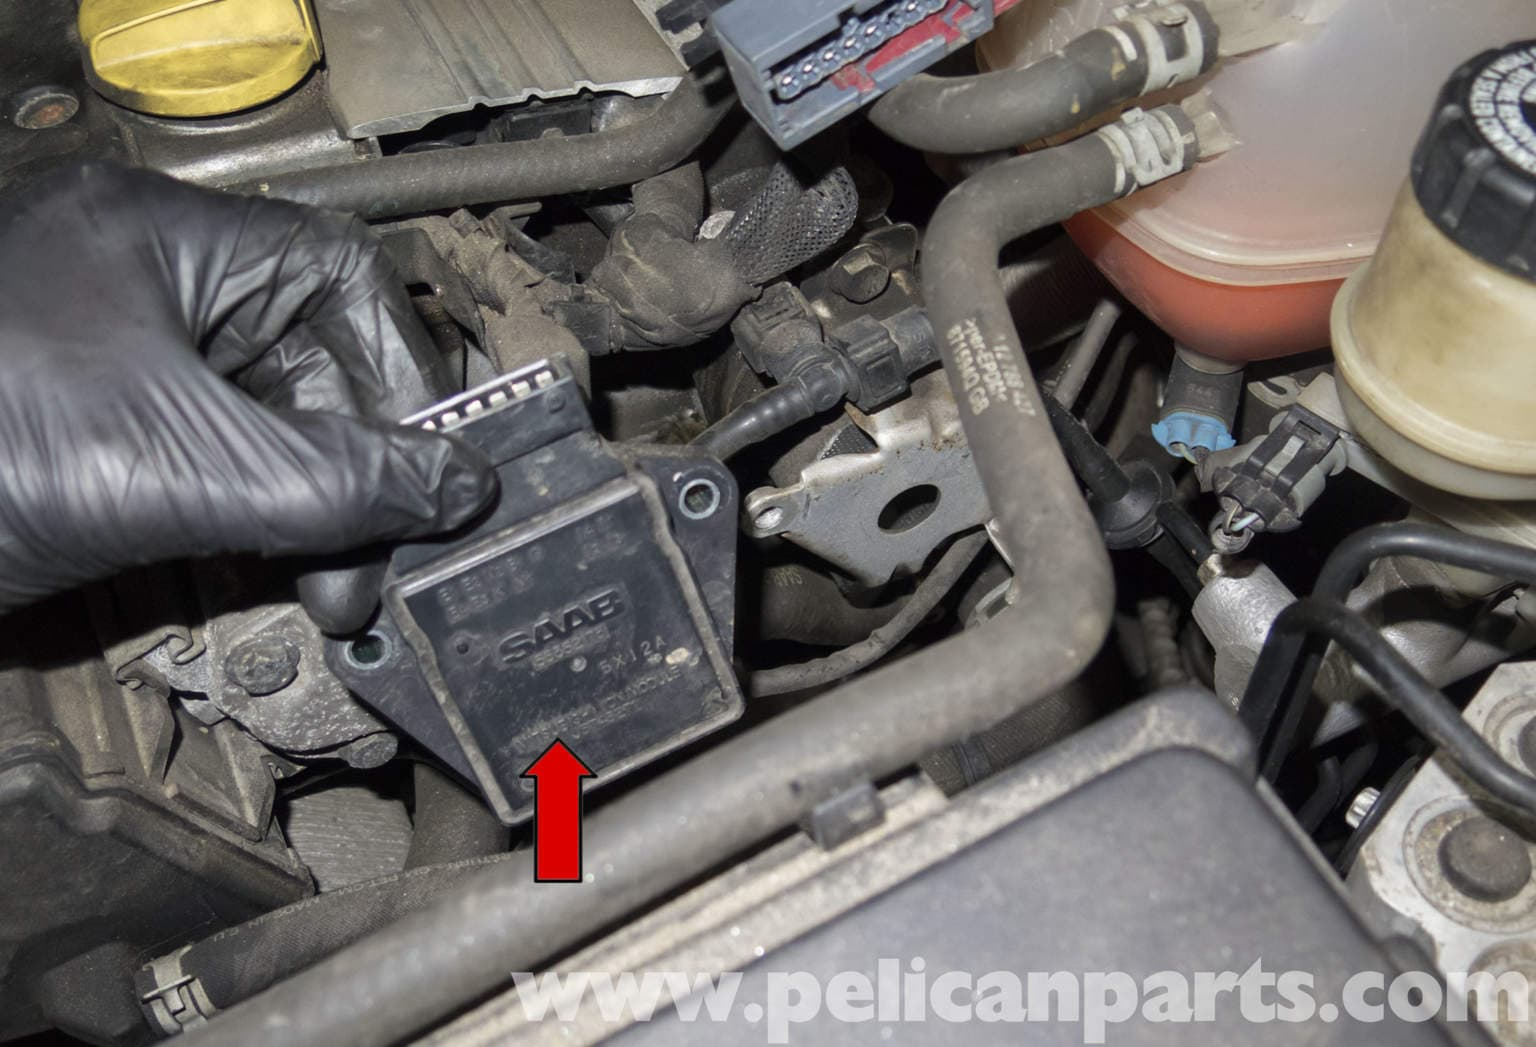 2003 saab 9 3 engine wiring diagram with 04 Engine Ignition Module Replacement on 1995 Audi Cabriolet Cabin Filter Replacement together with Saab 9 7x Wiring Diagram further Saab 9 5 Wiring Diagram further 1 9 Tdi Vacuum Diagram in addition 11 FUEL Fuel Filter Replacement.